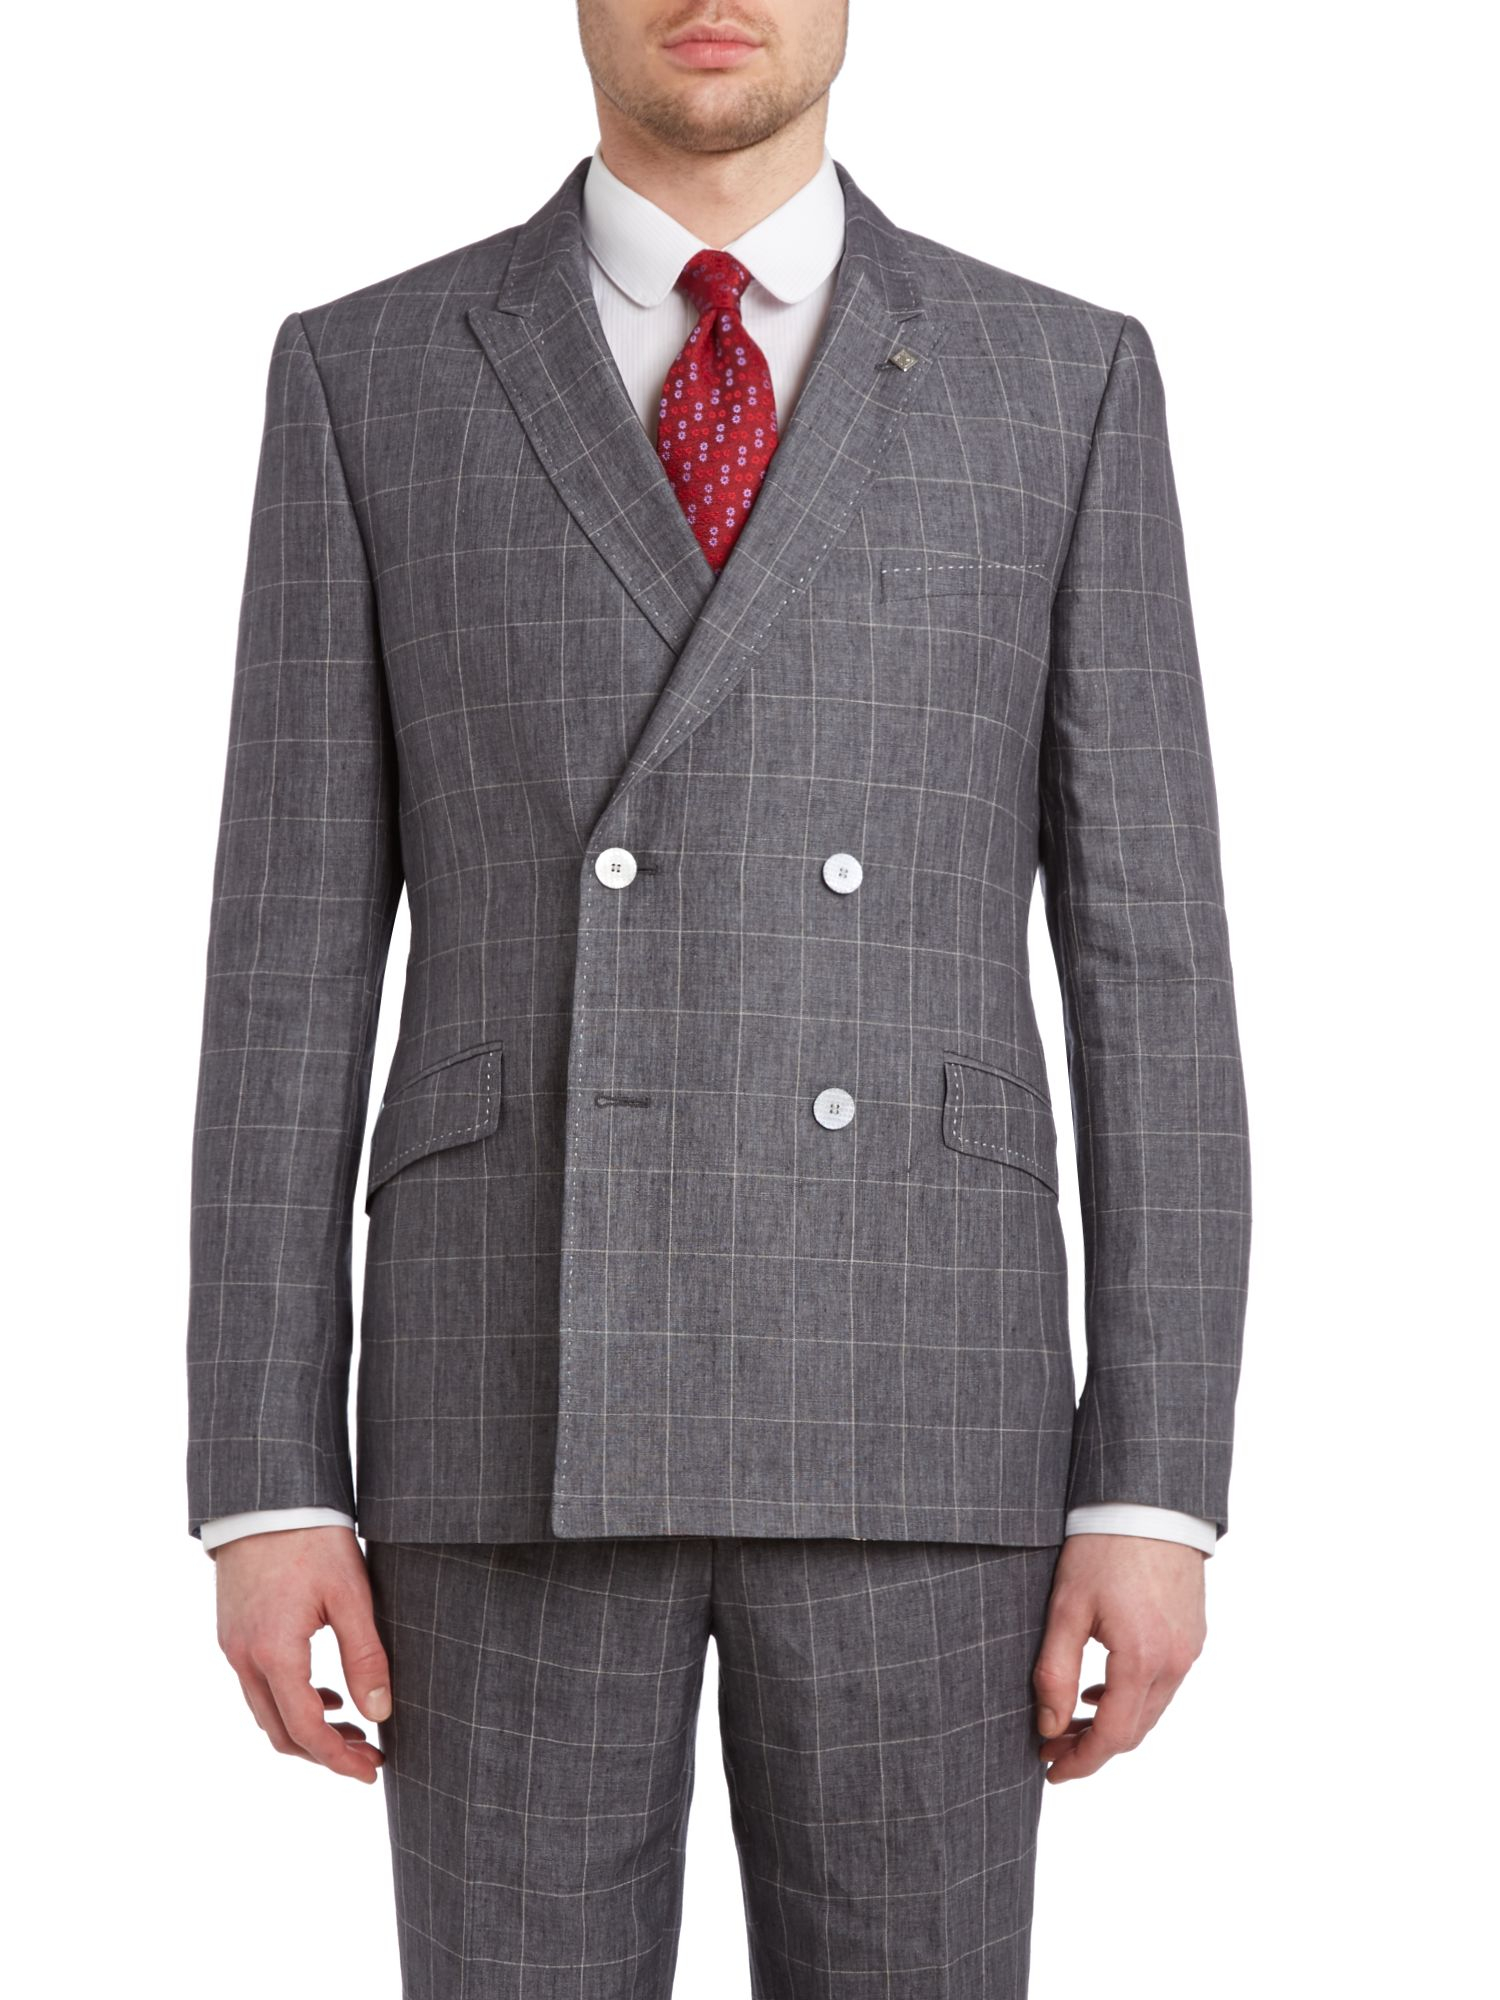 Ted baker Piejak Slim Fit Double Breasted Check Suit Jacket in